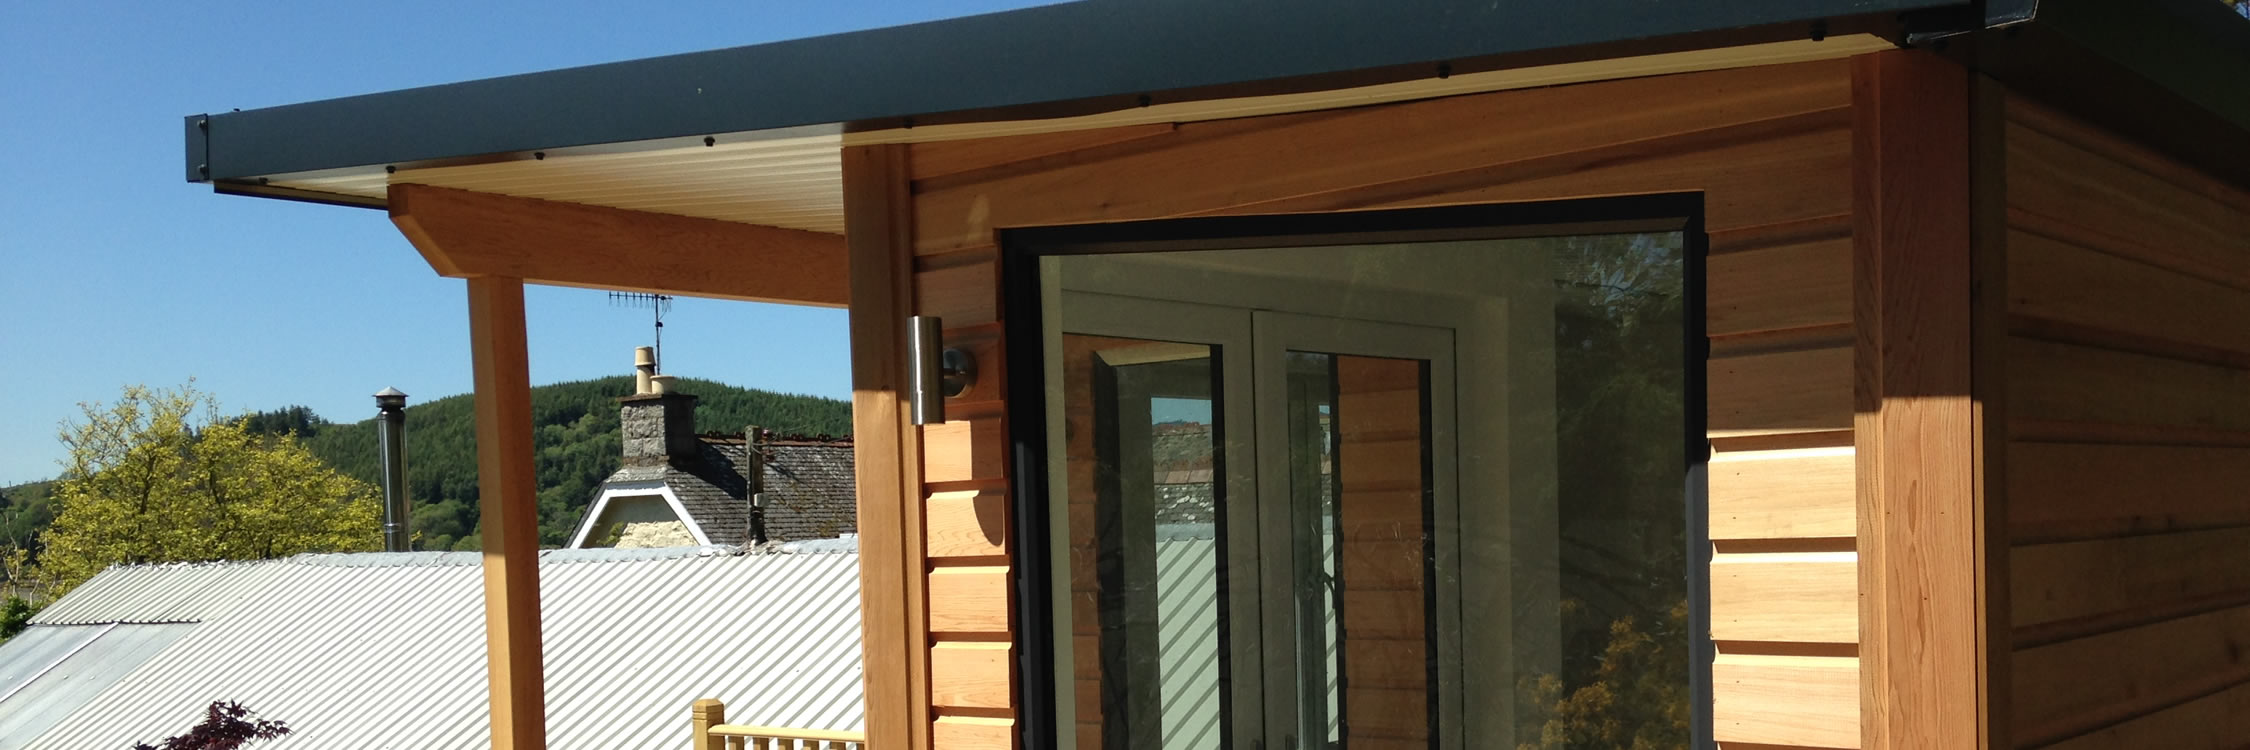 Garden Rooms Garden rooms scotland designed for you a room from your home in your garden sisterspd